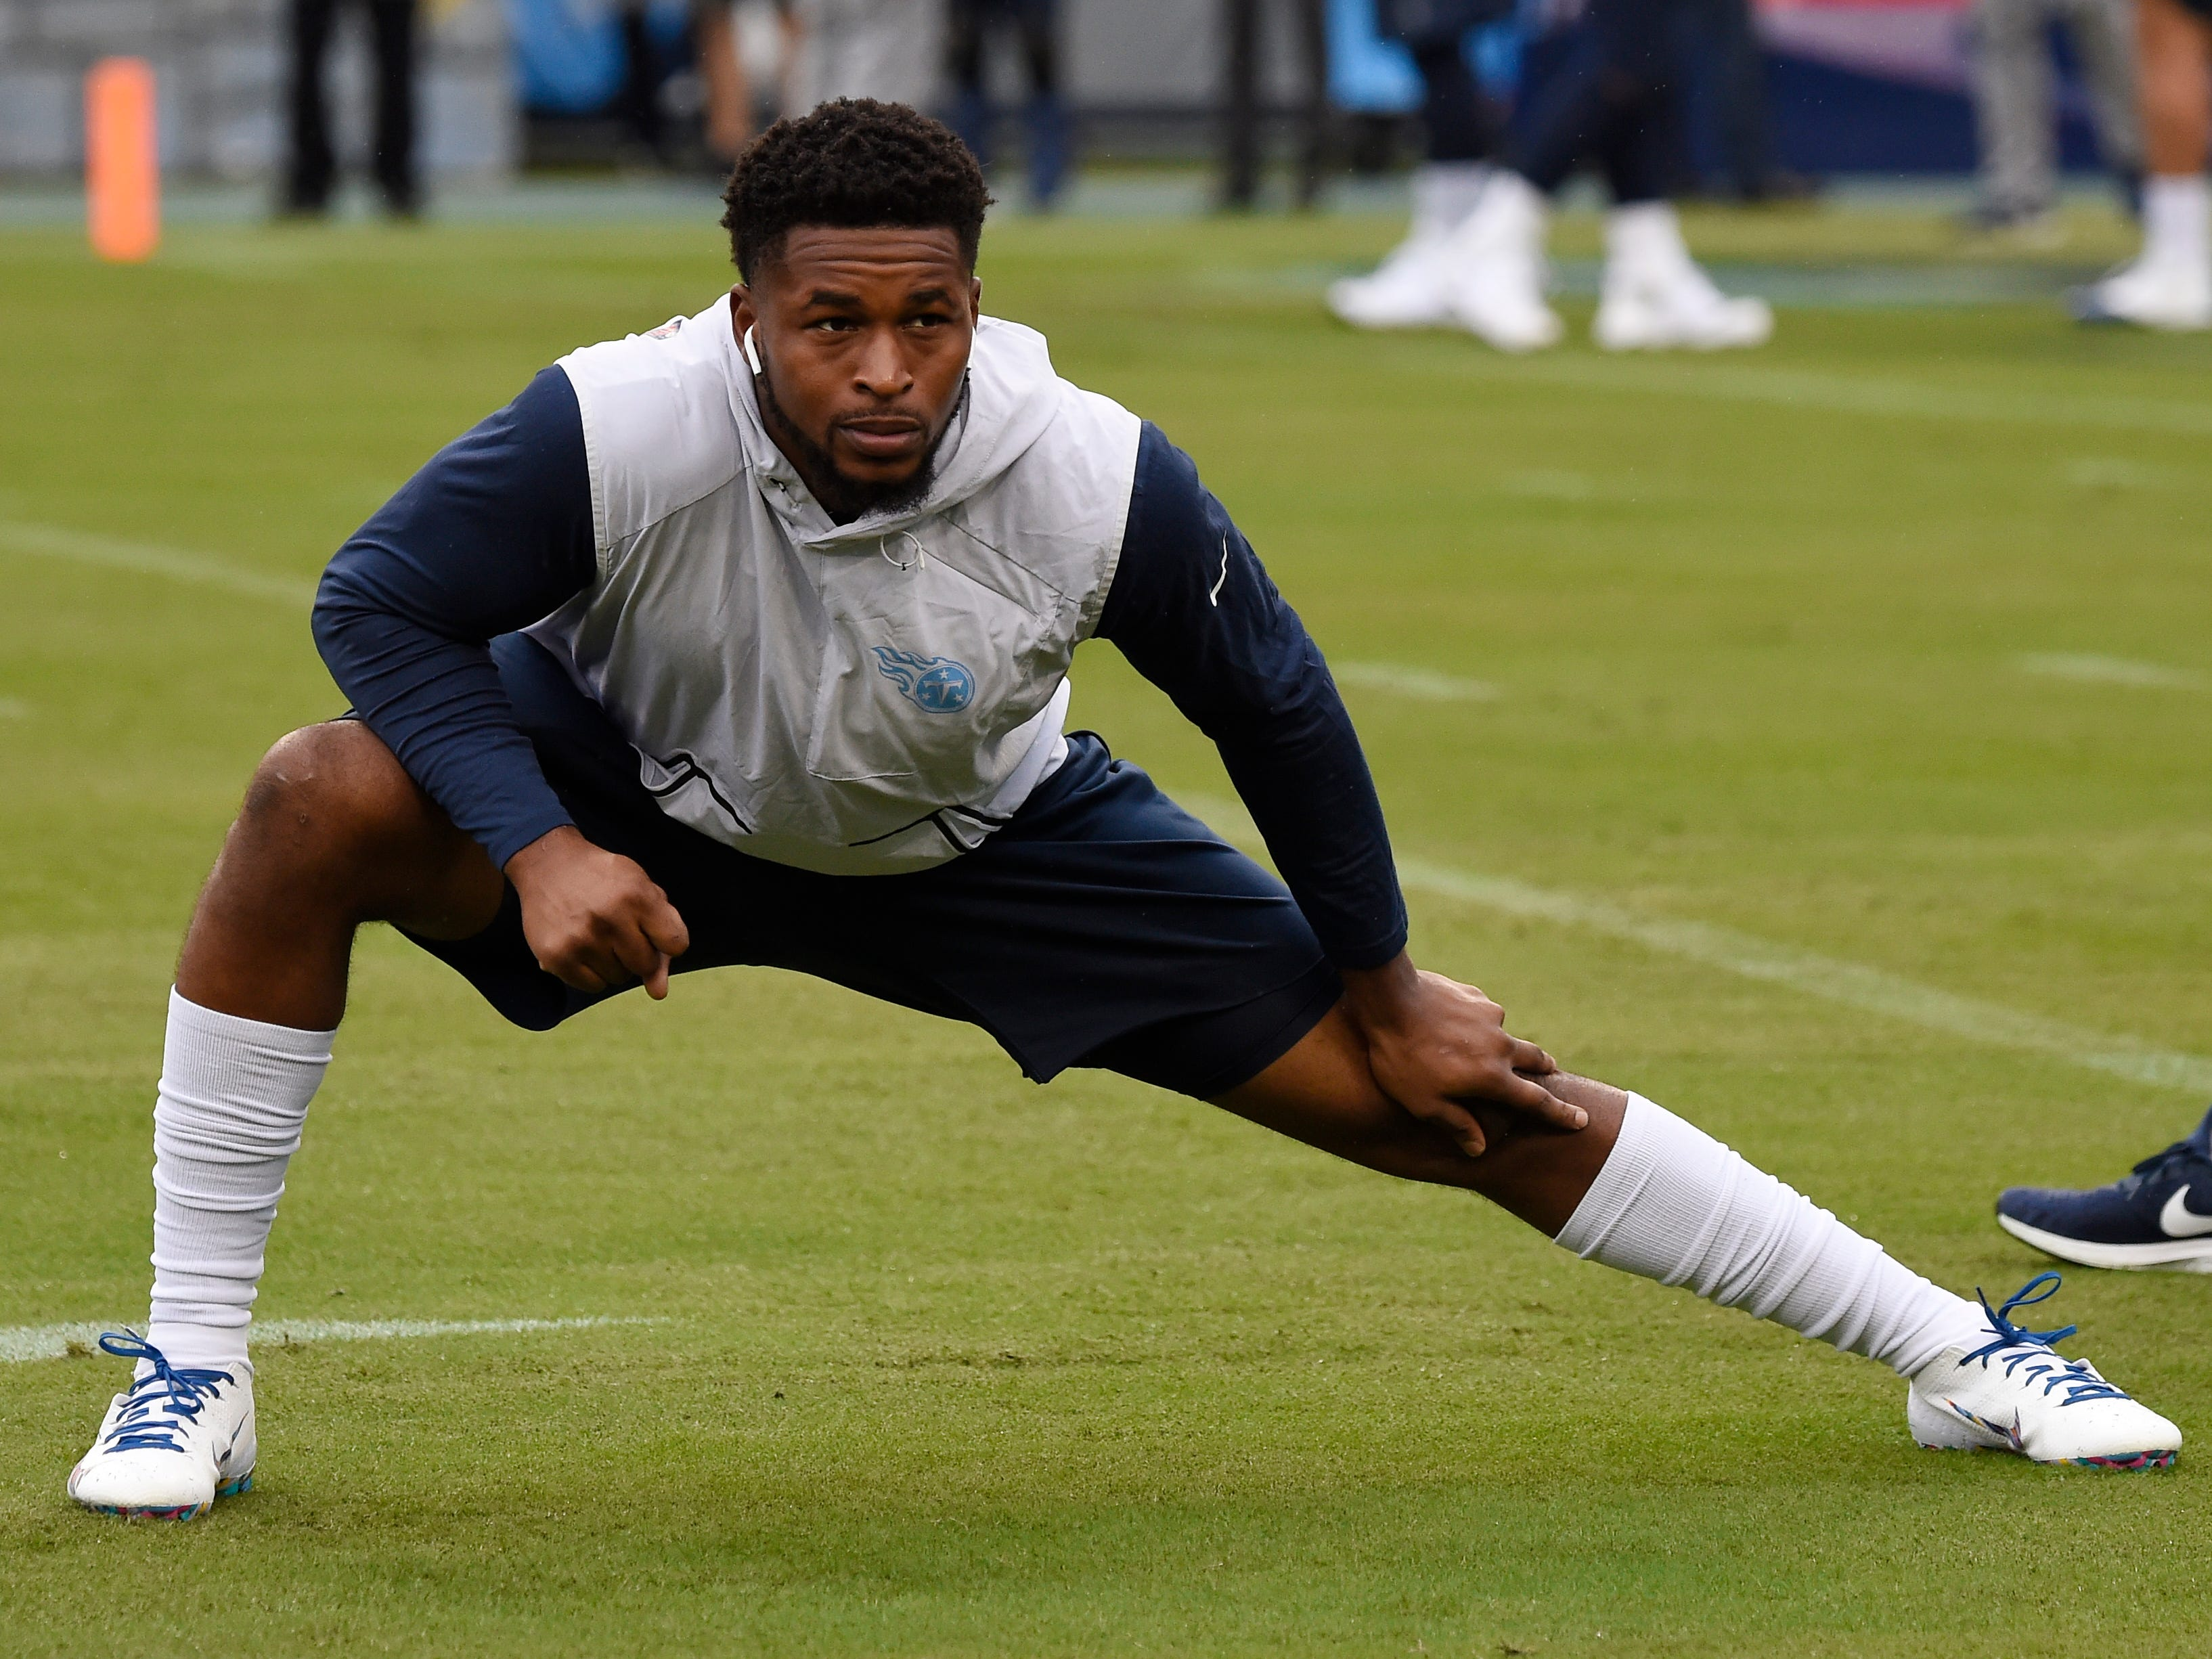 Titans free safety Kevin Byard (31) warms up before the start of the game at Nissan Stadium Sunday, Oct. 14, 2018, in Nashville, Tenn.